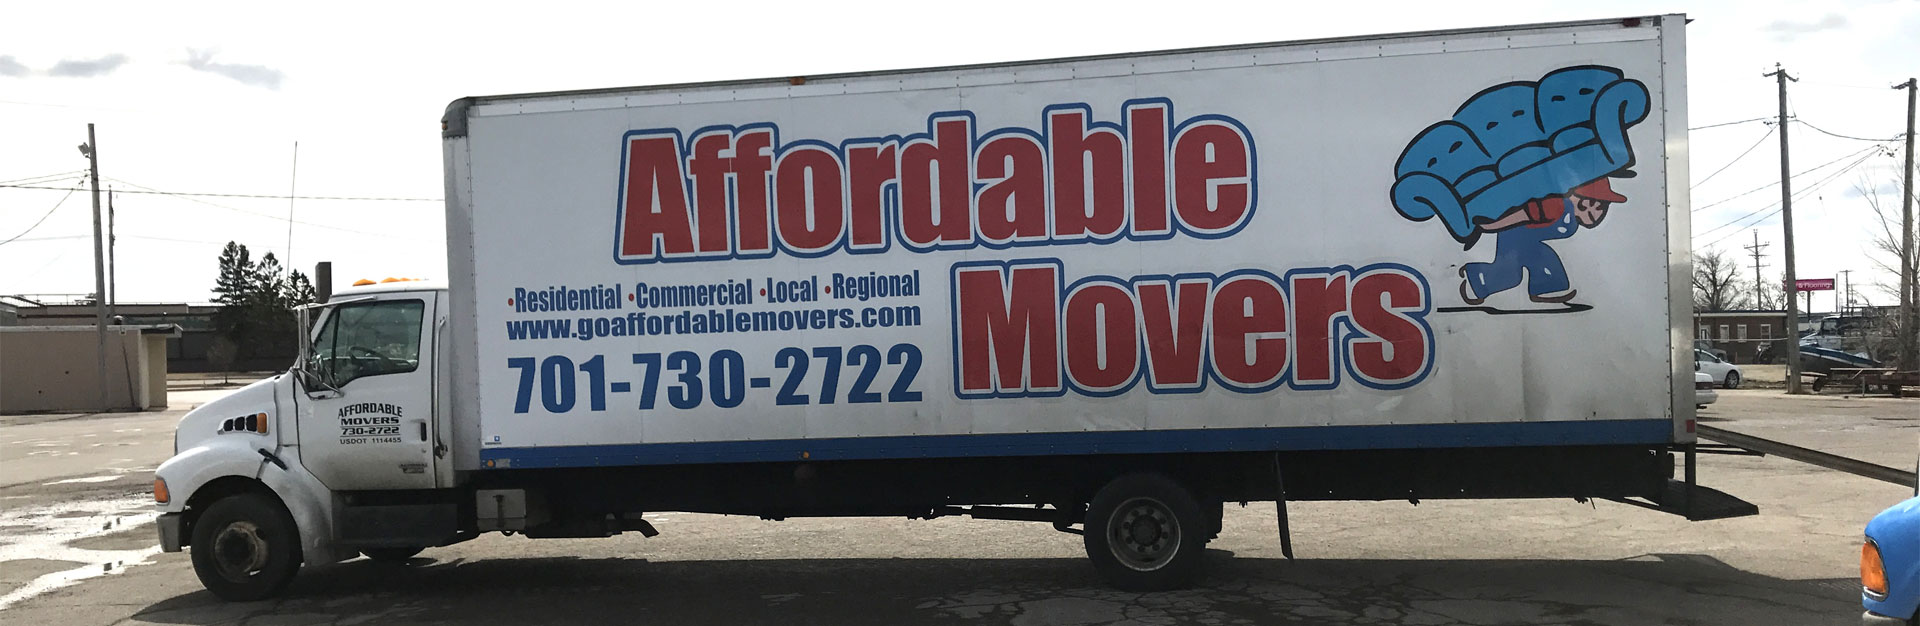 Affordable Movers - Header Banner